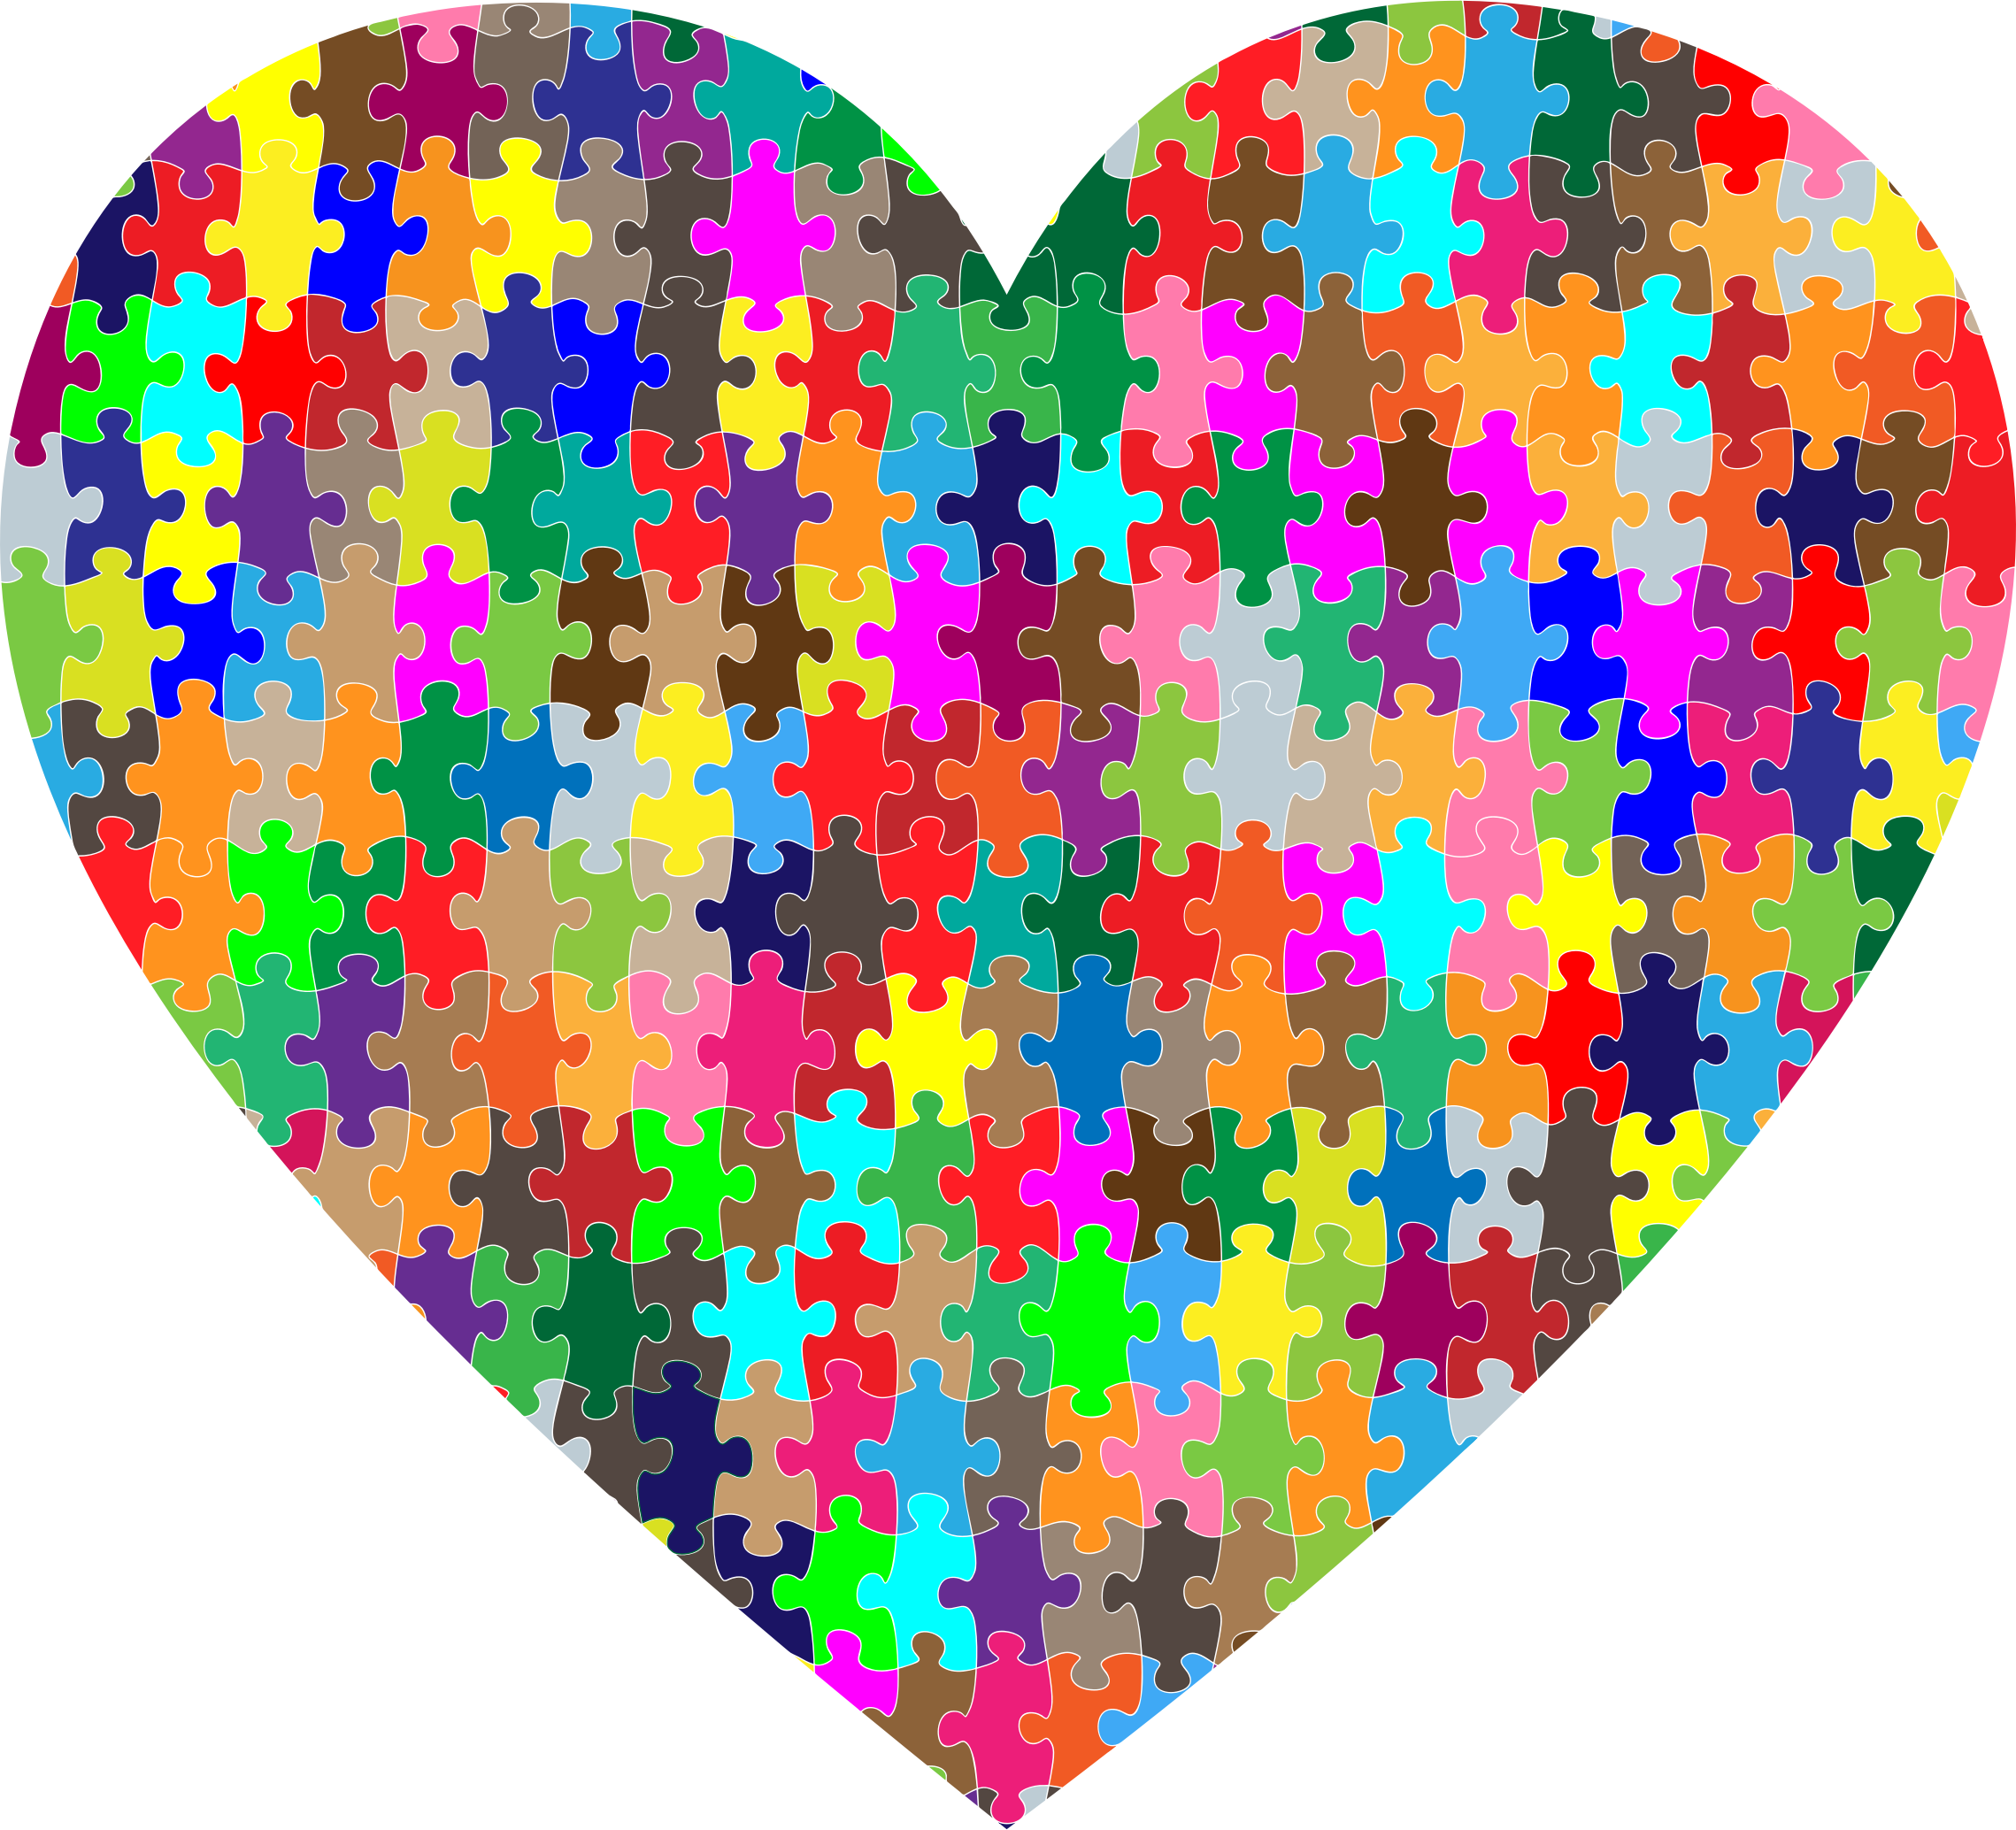 Puzzle heart clipart image freeuse Clipart - Colorful Puzzle Heart image freeuse